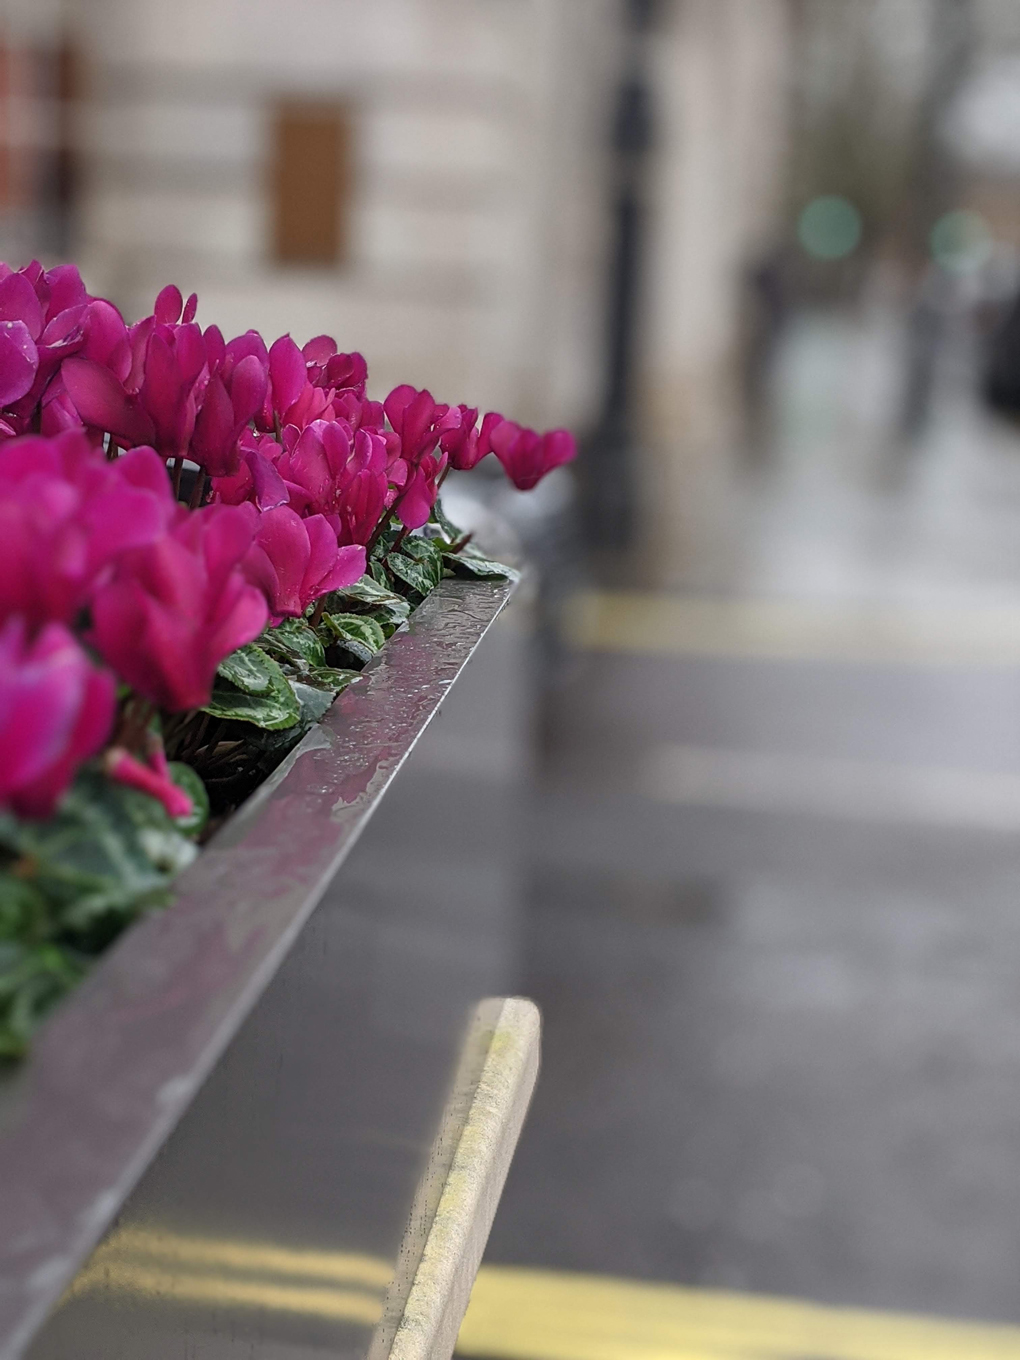 Pink flowers outside the Connaught hotel in Mayfair; blurred background, focus on flowers